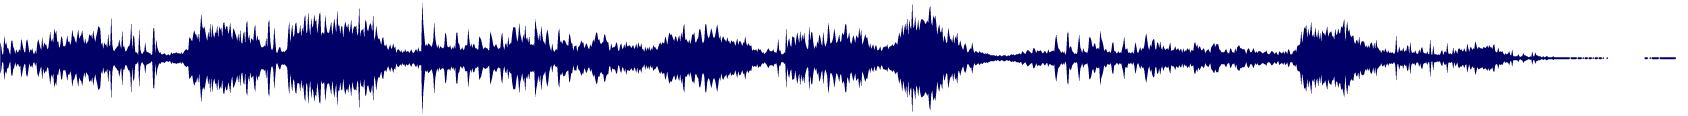 waveform of track #87900